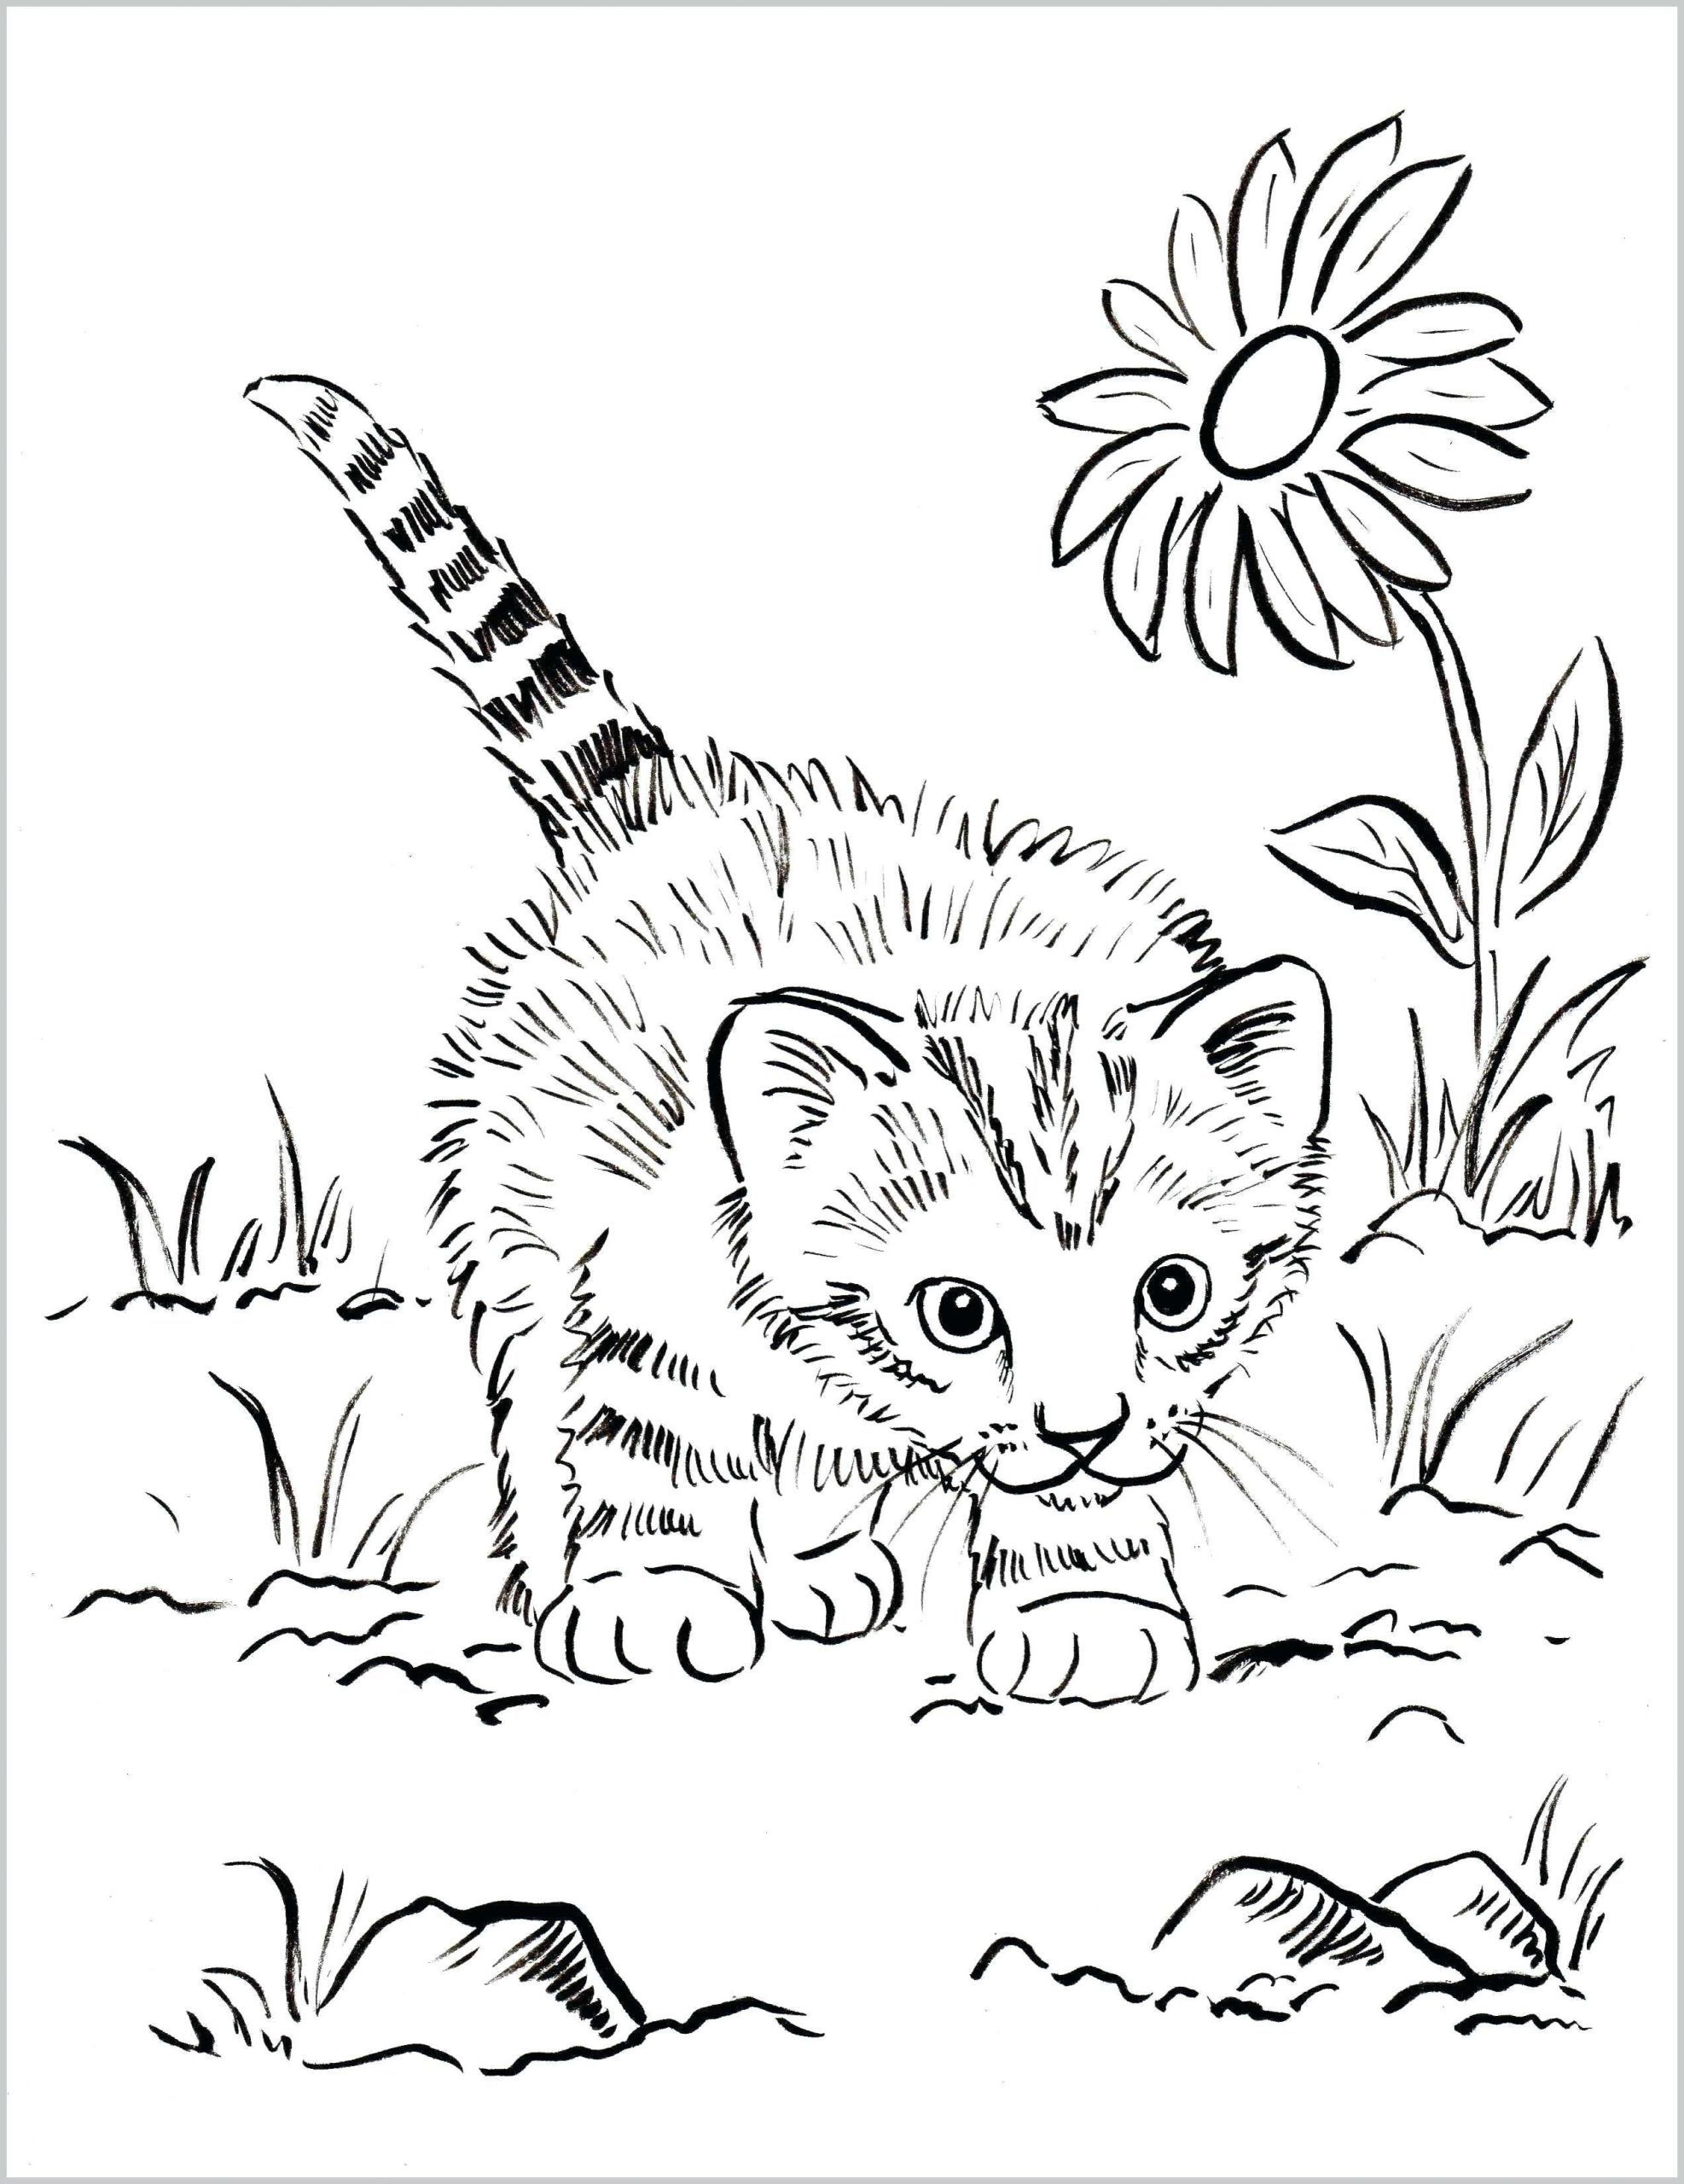 4 Realistic Cat Coloring Pages Coloring Cat Color Pages Printable Kitten Coloring And Cat Coloring Book Kittens Coloring Puppy Coloring Pages